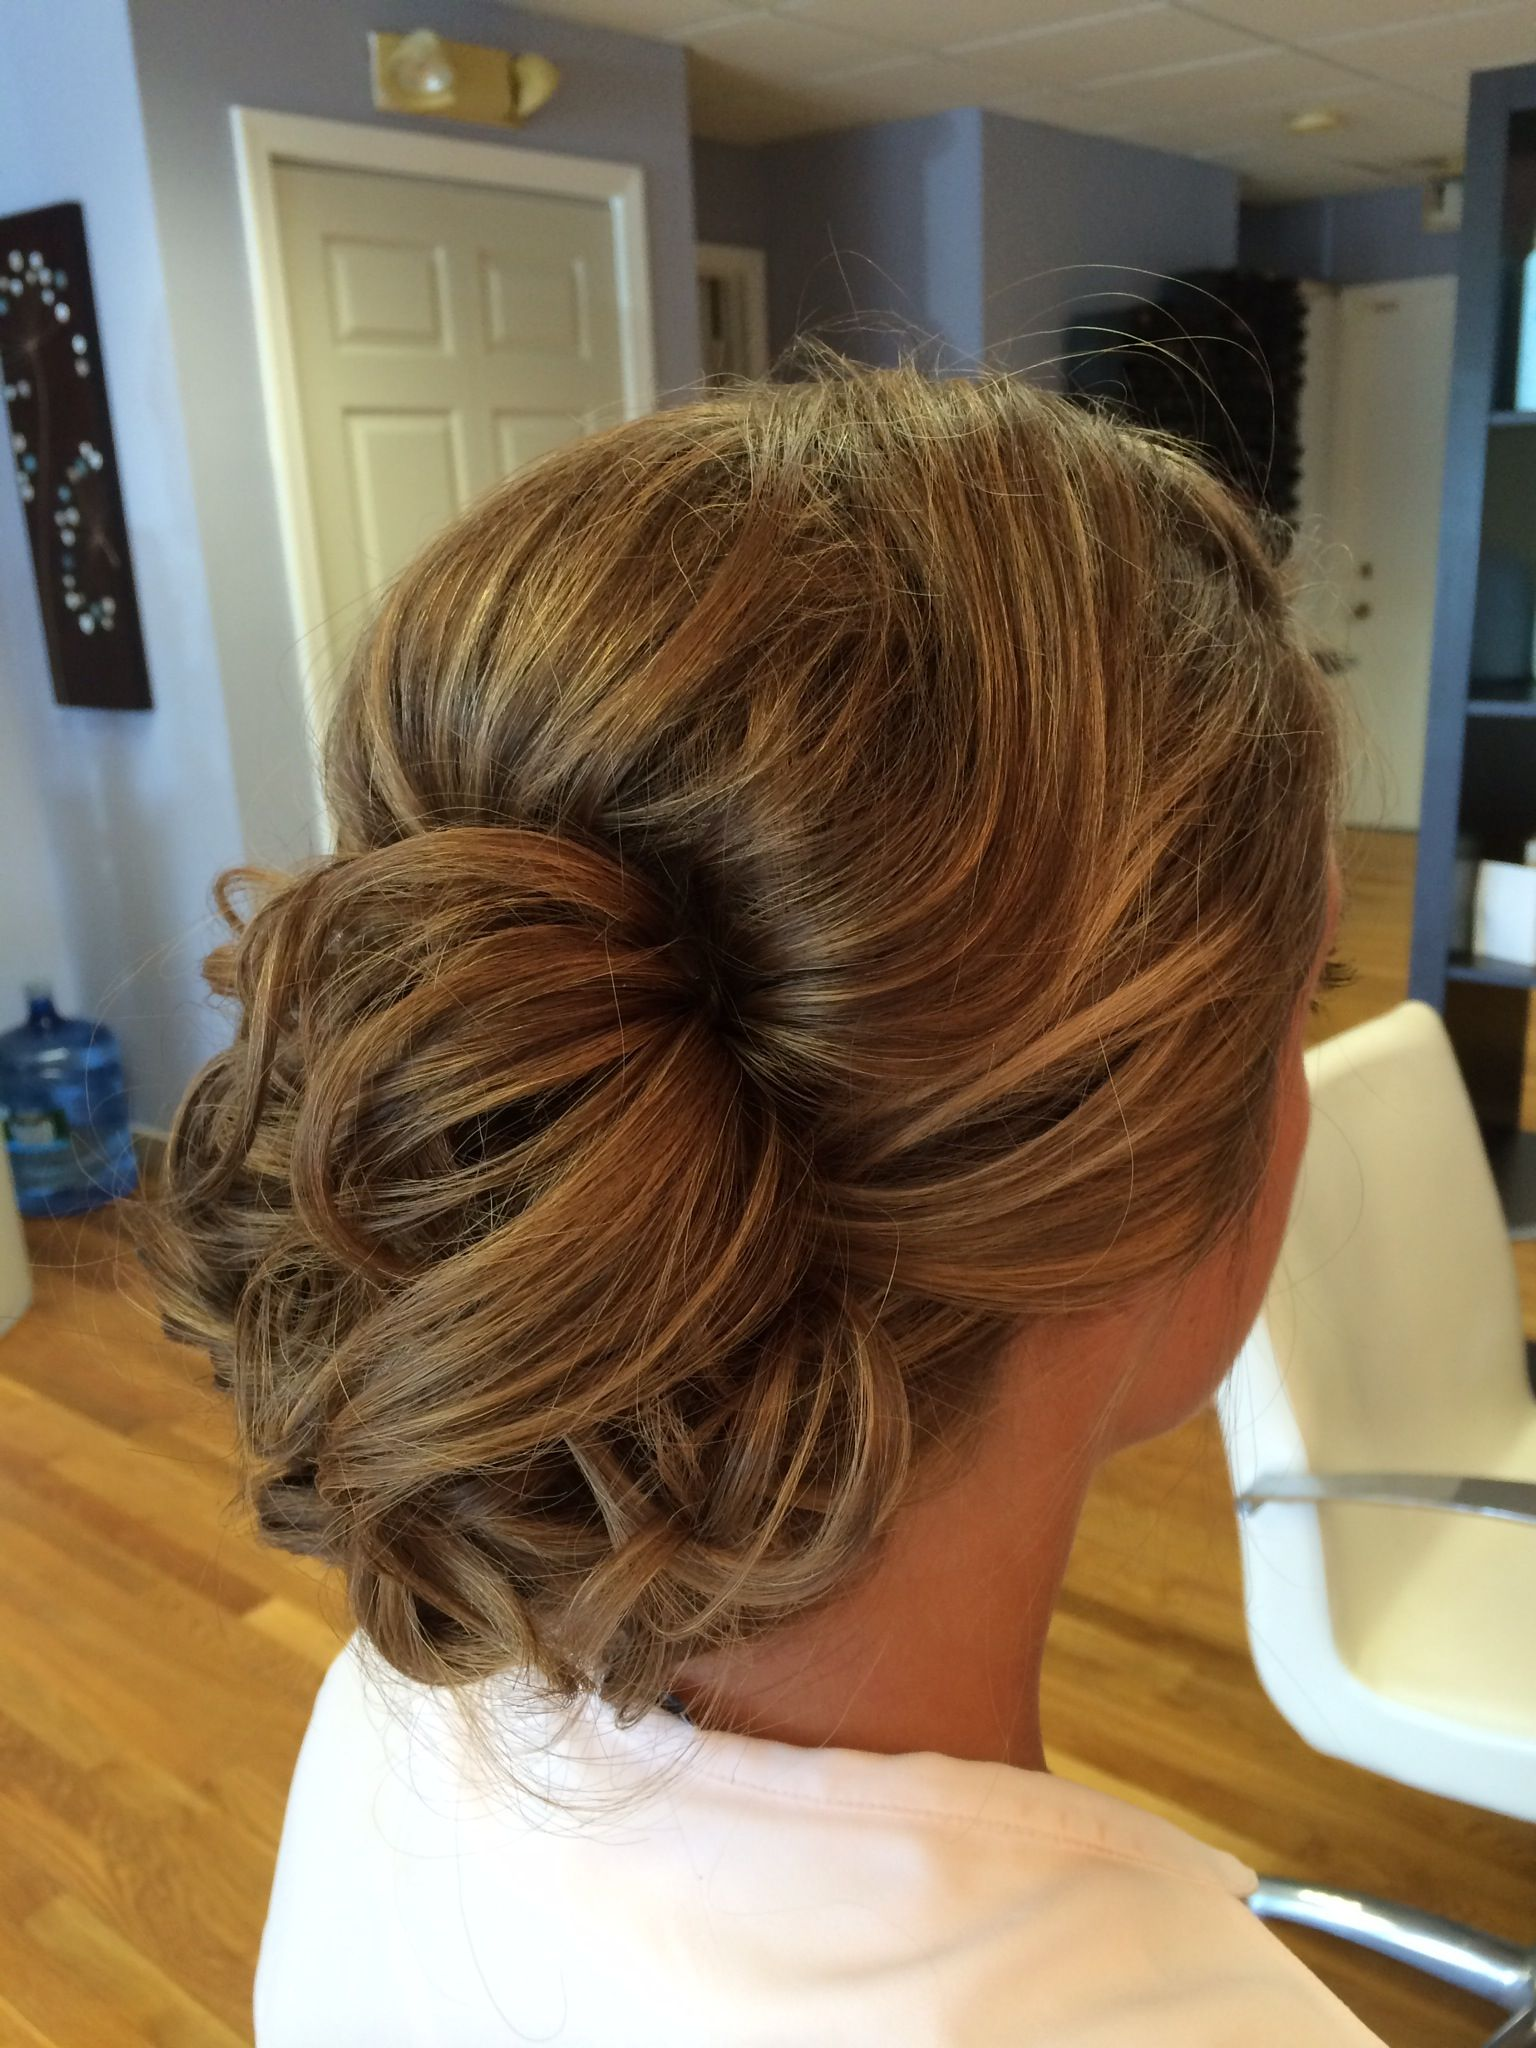 Sweet 16 Updo Hairstyles Pin By Anna Shears On Beauty Hair Nails And